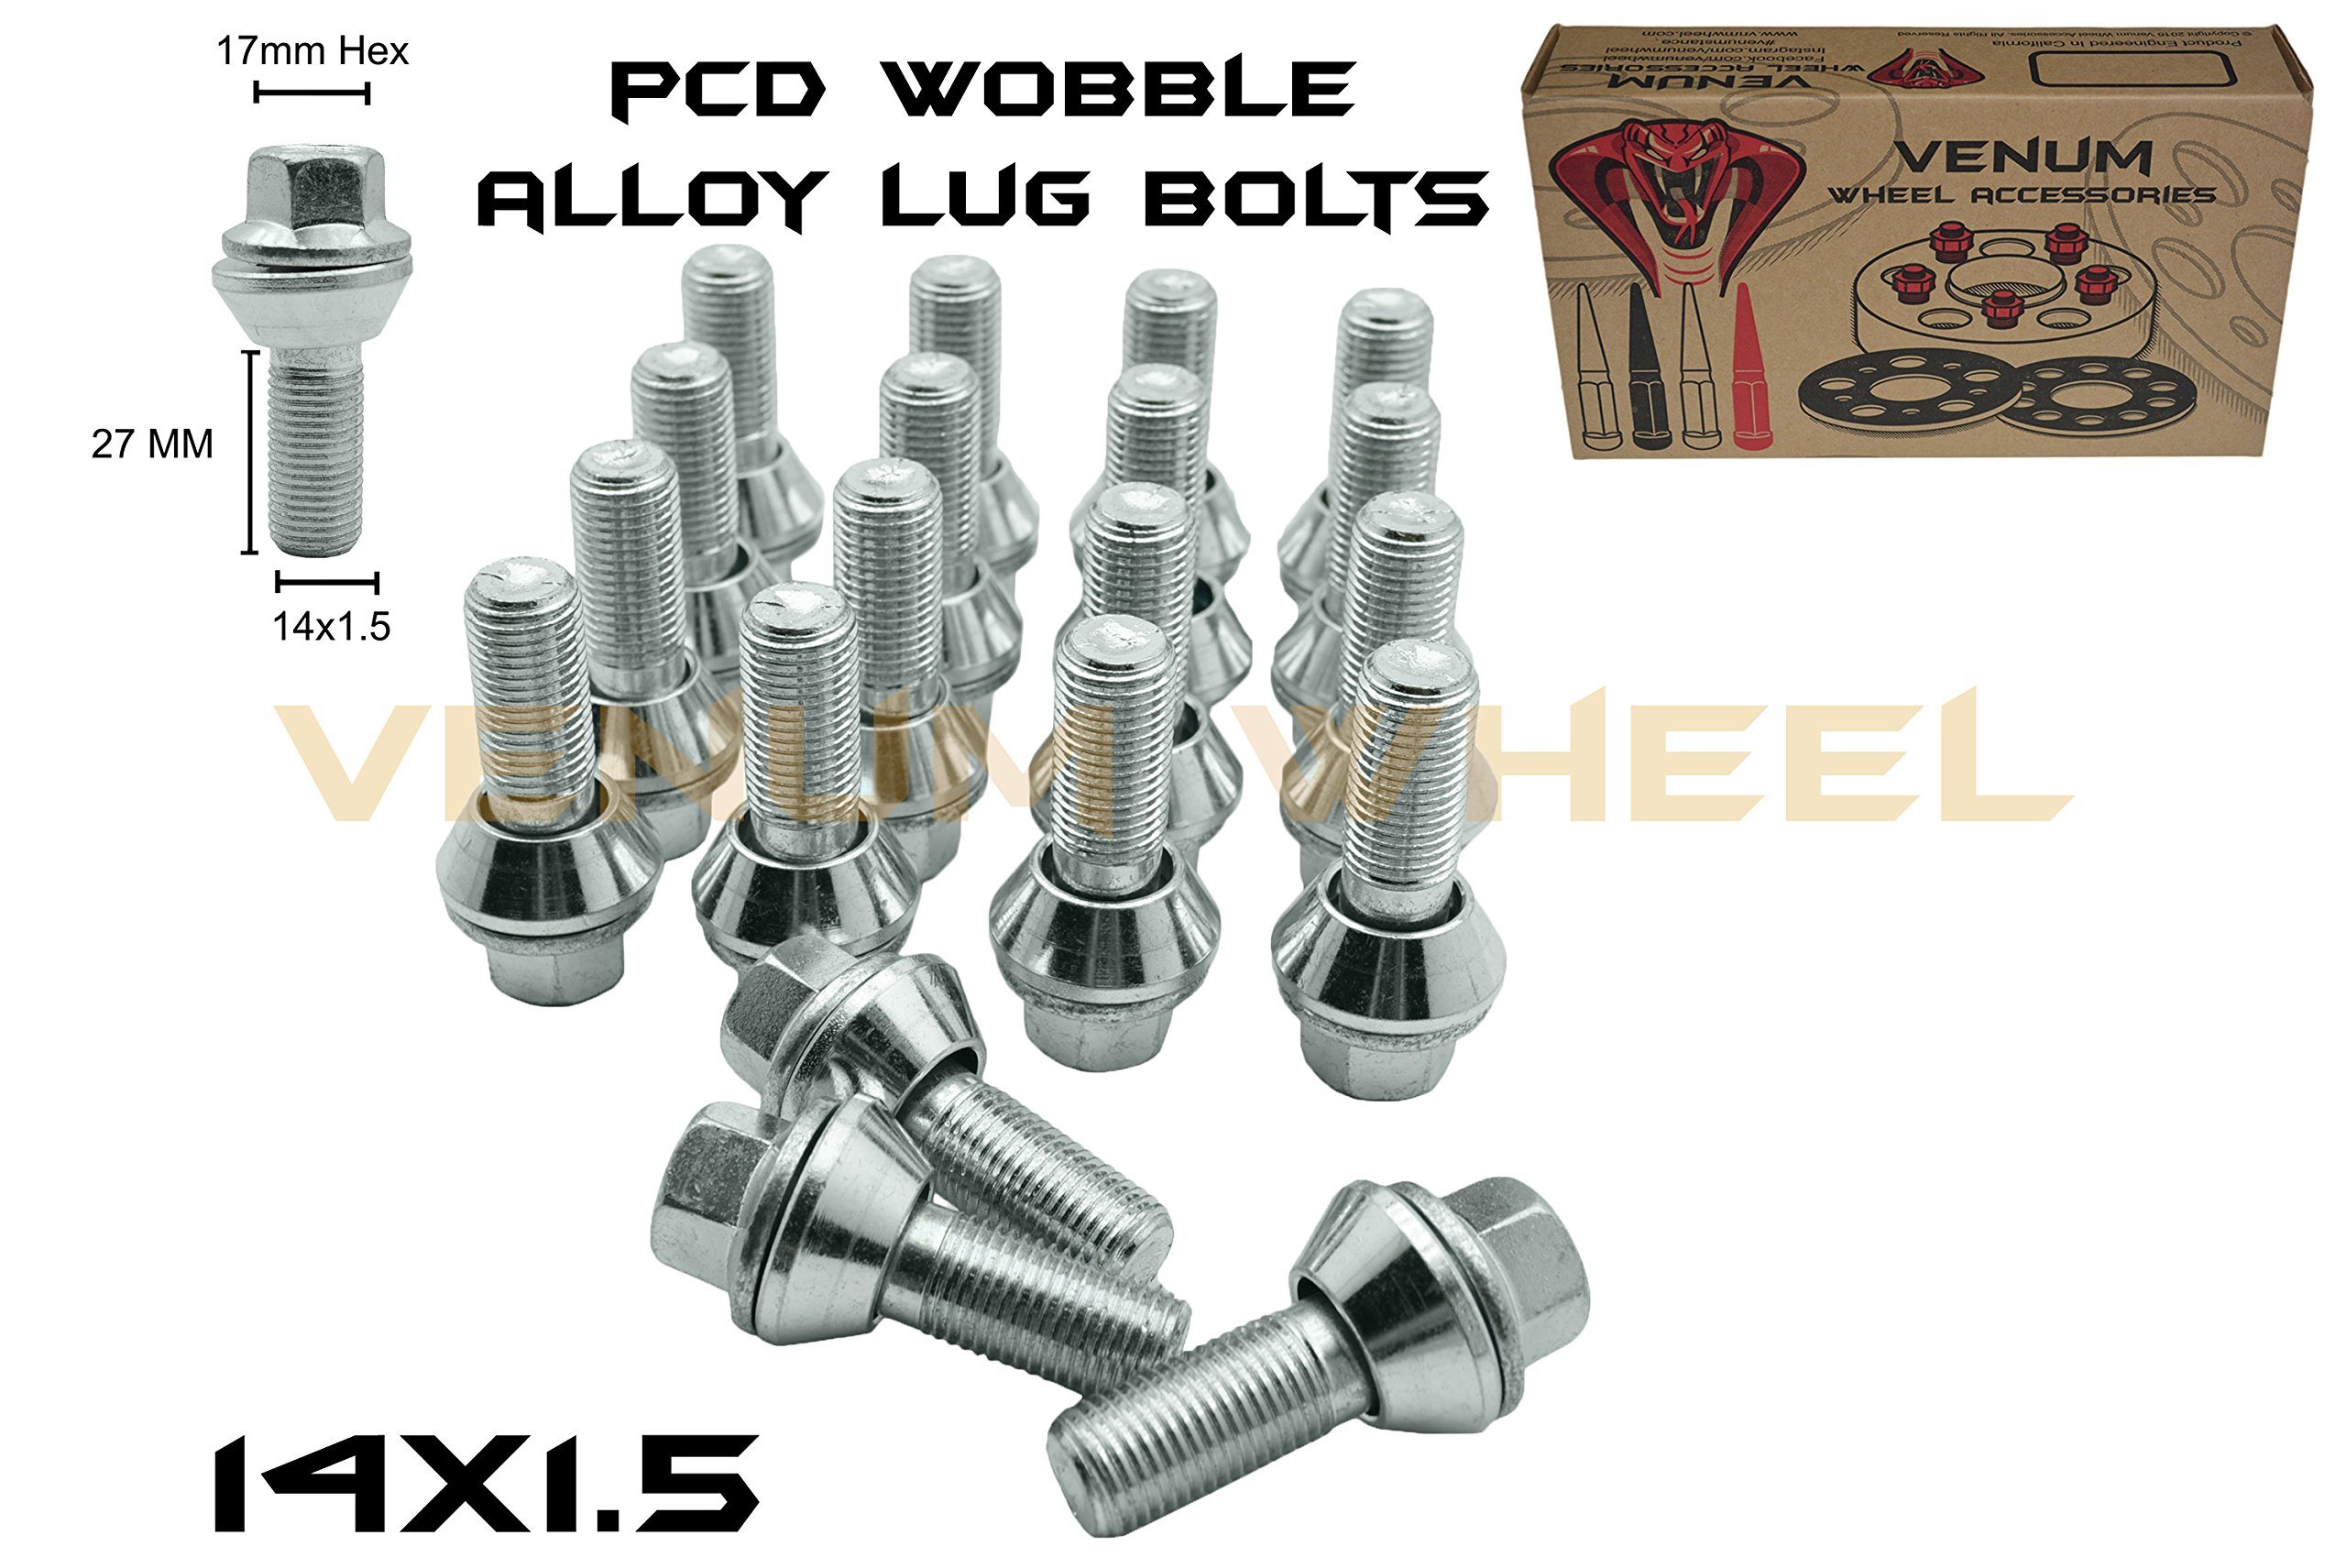 14x1.5 Zinc PCD Variation Wobble Wobbly Alloy Wheel Lug Bolts 1.2 Radius | 27mm Shank | Fast Shipping Product Certified